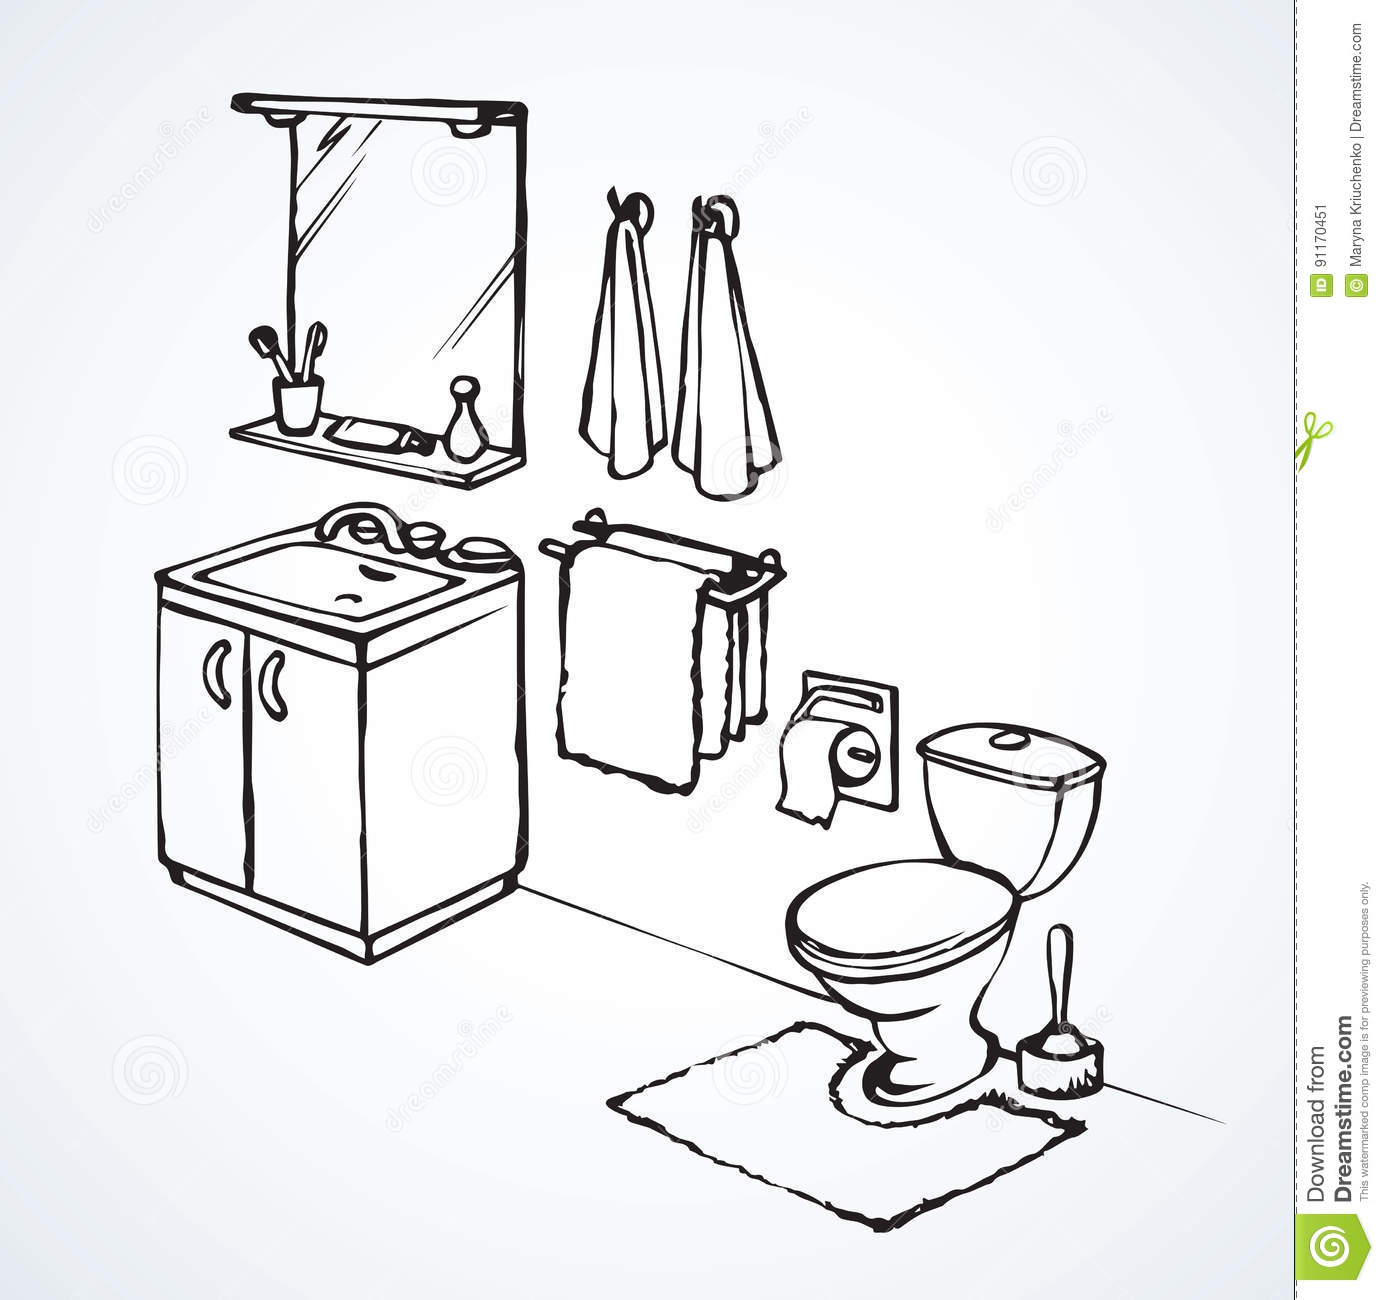 Toilet. Vector Drawing Stock Vector. Illustration Of